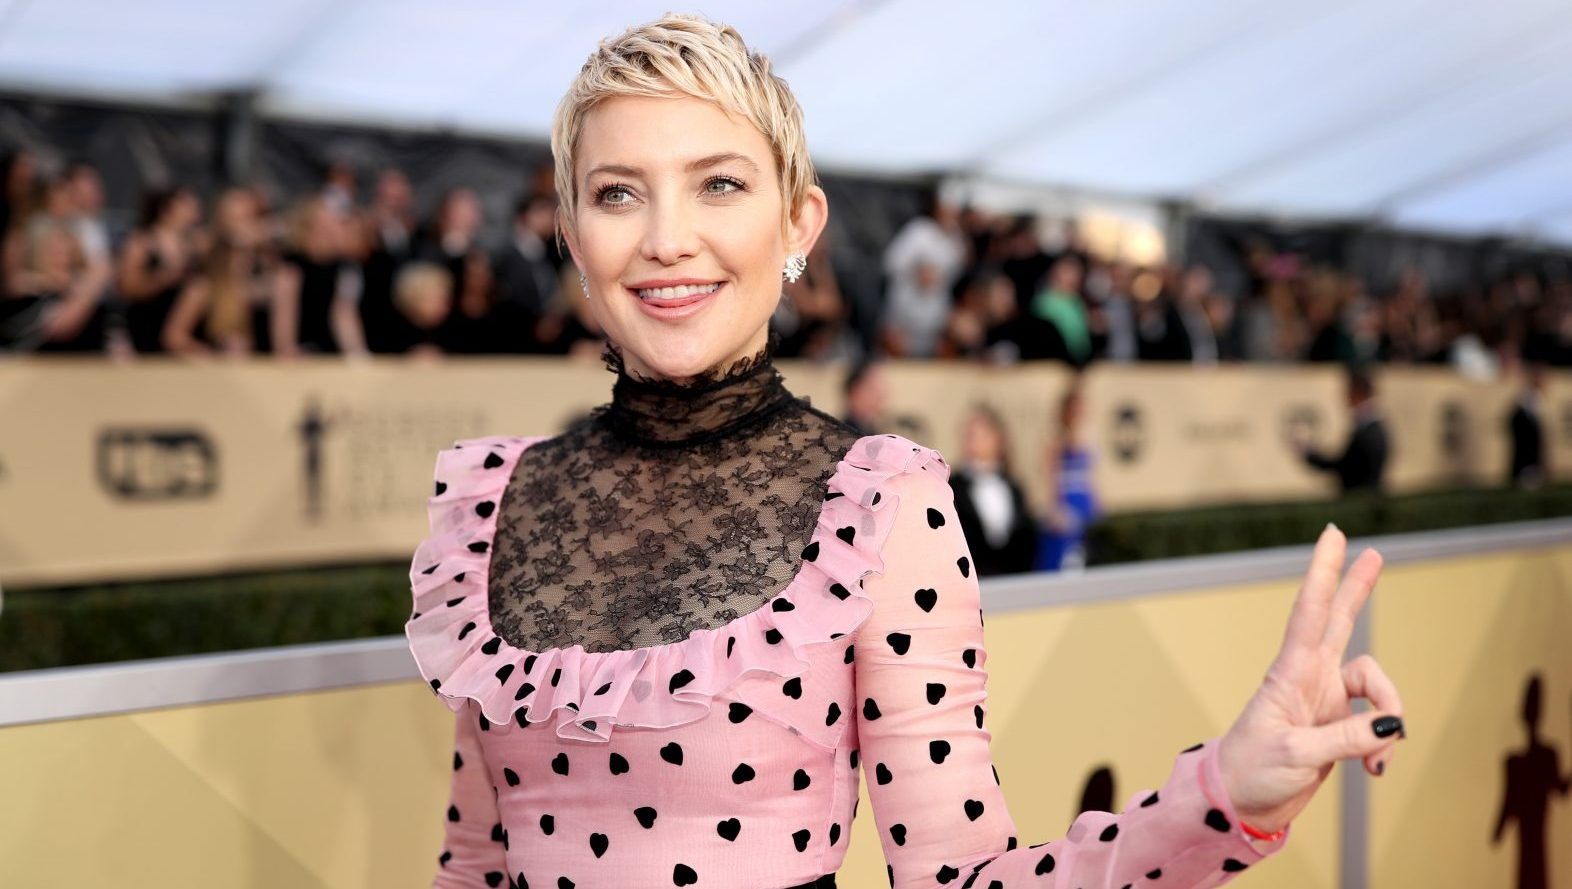 Kate Hudson giving a peace sign in a prink dress